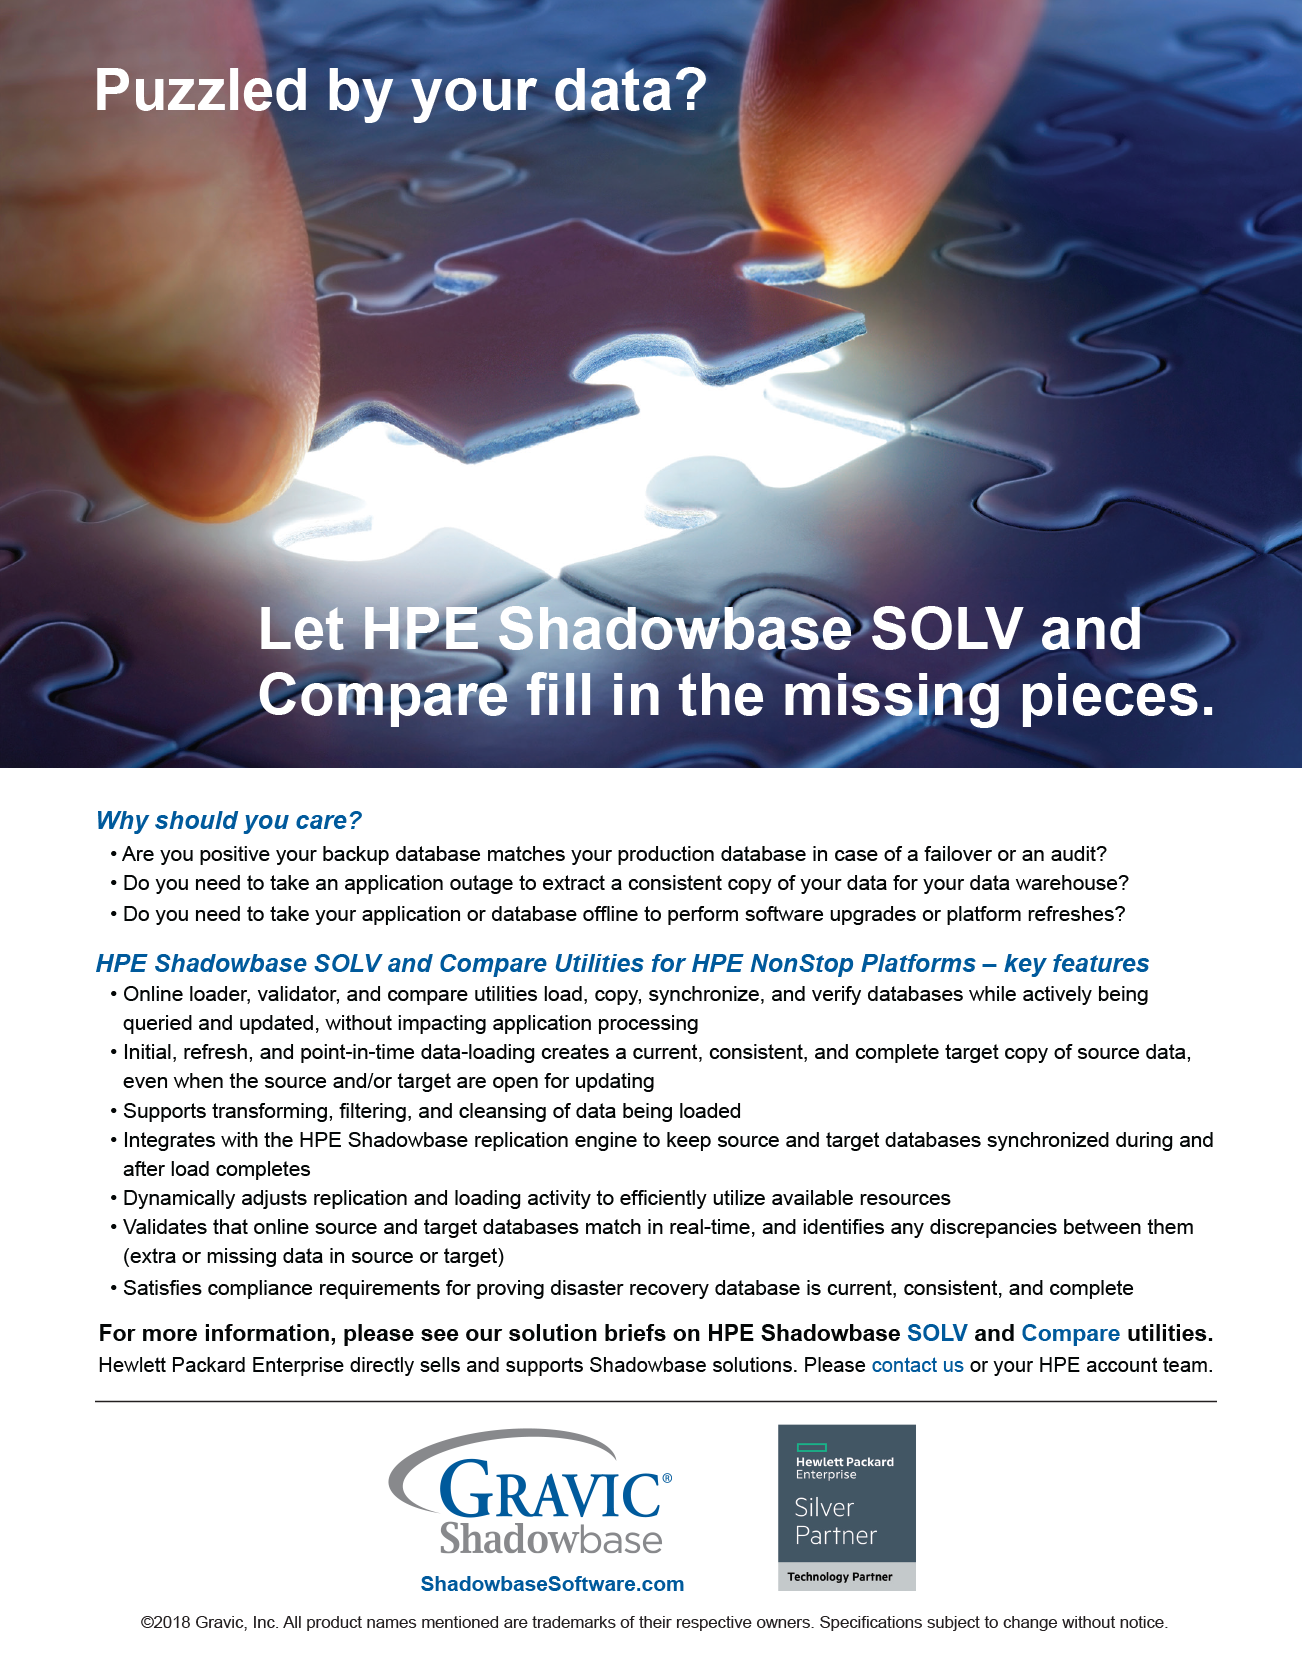 Let HPE Shadowbase SOLV and Compare fill in the missing pieces